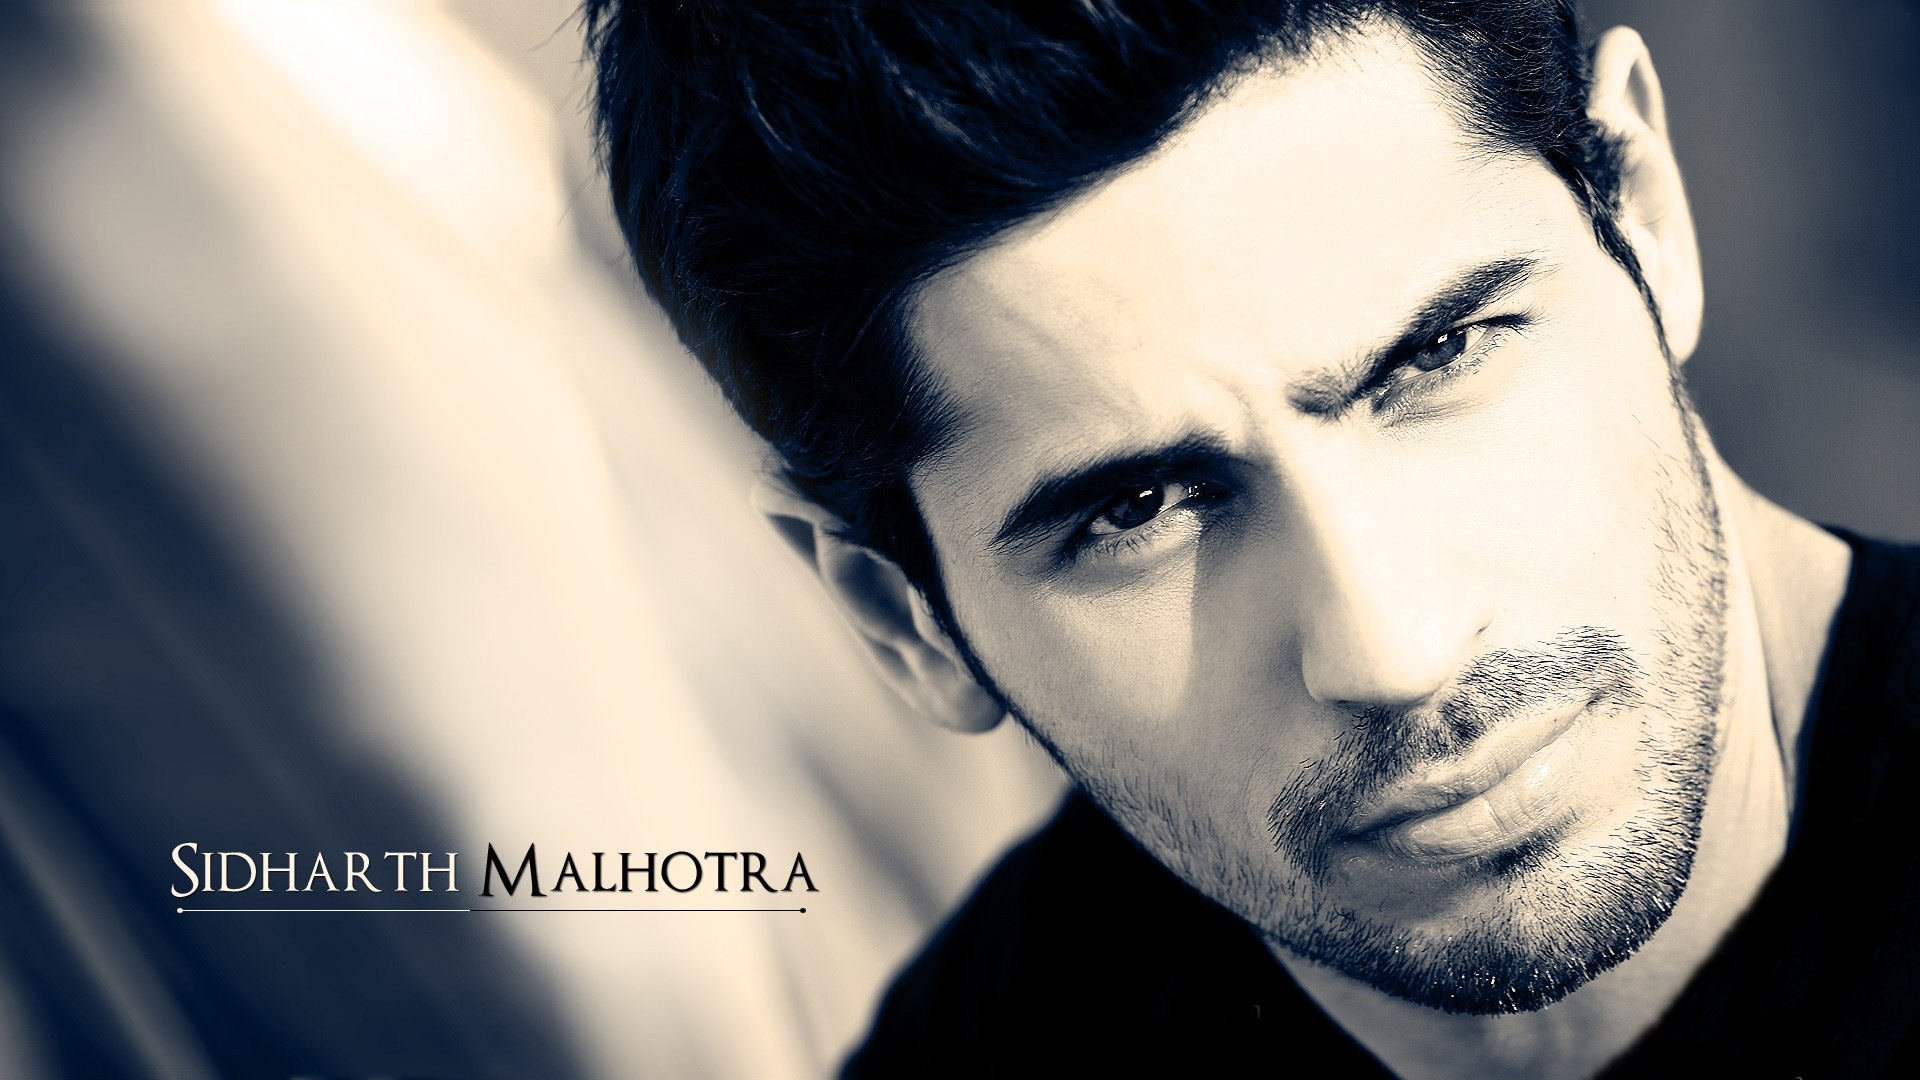 Sidharth Malhotra HD Wallpapers